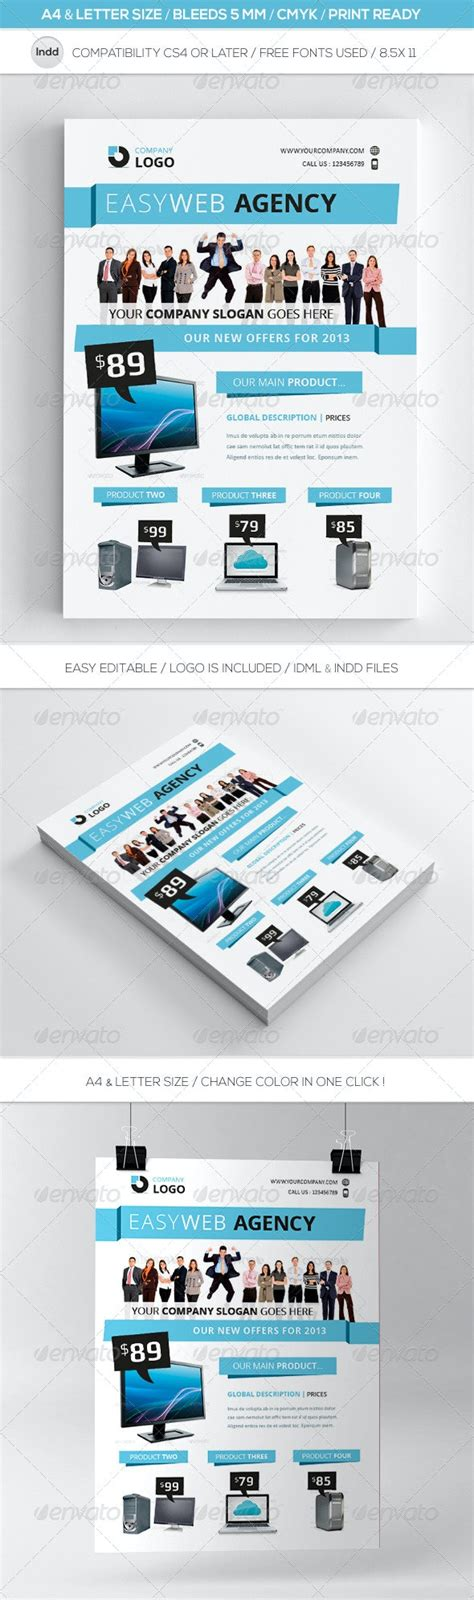 clean indesign commerce flyer template letter